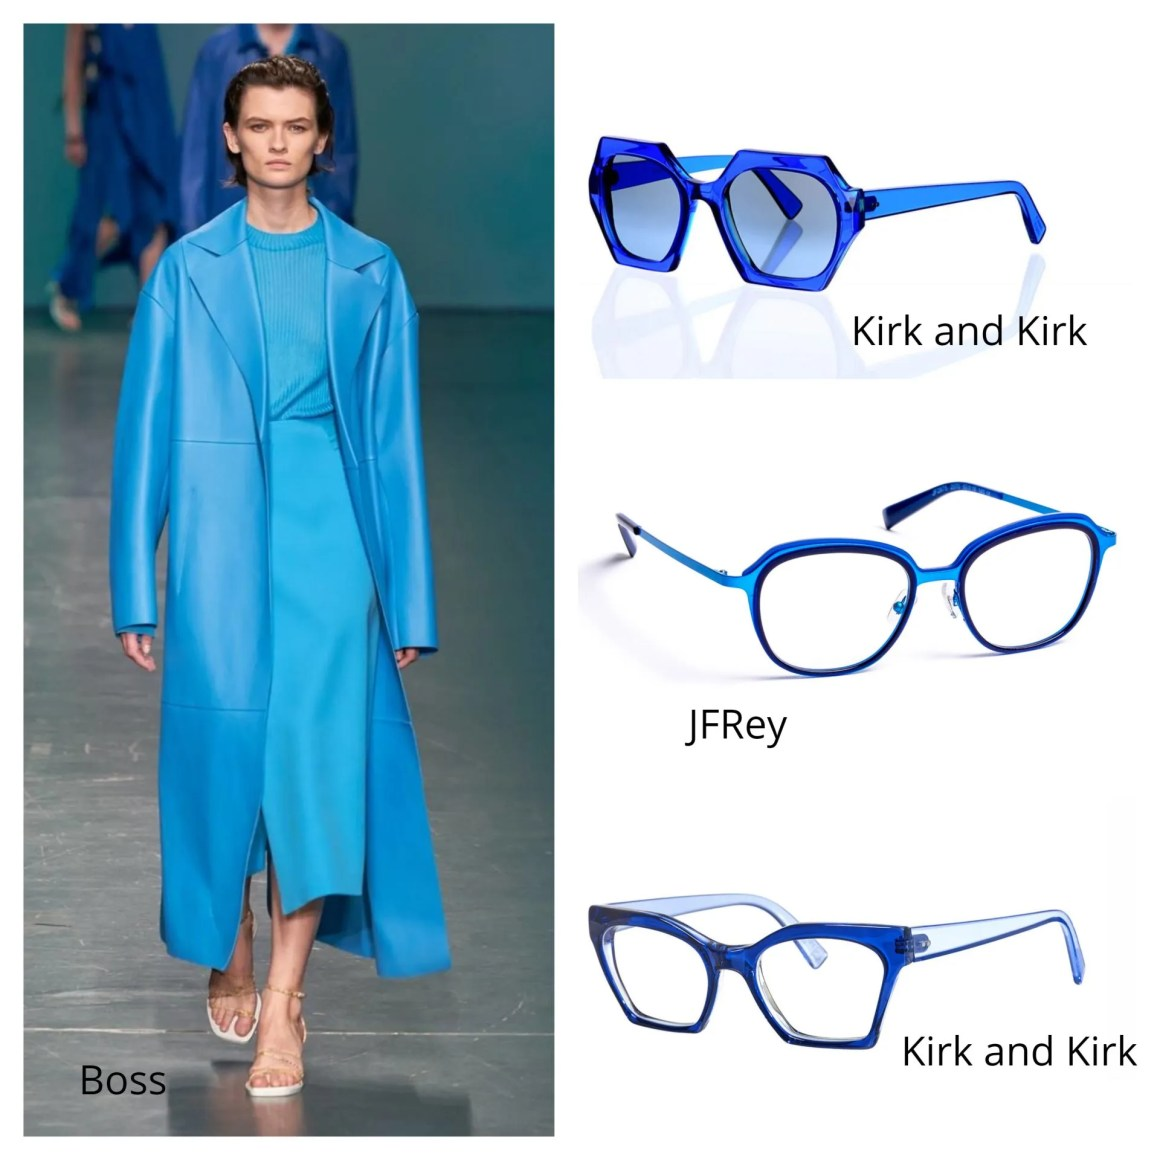 fashion and eyewear trends 2020 fluorescent blue